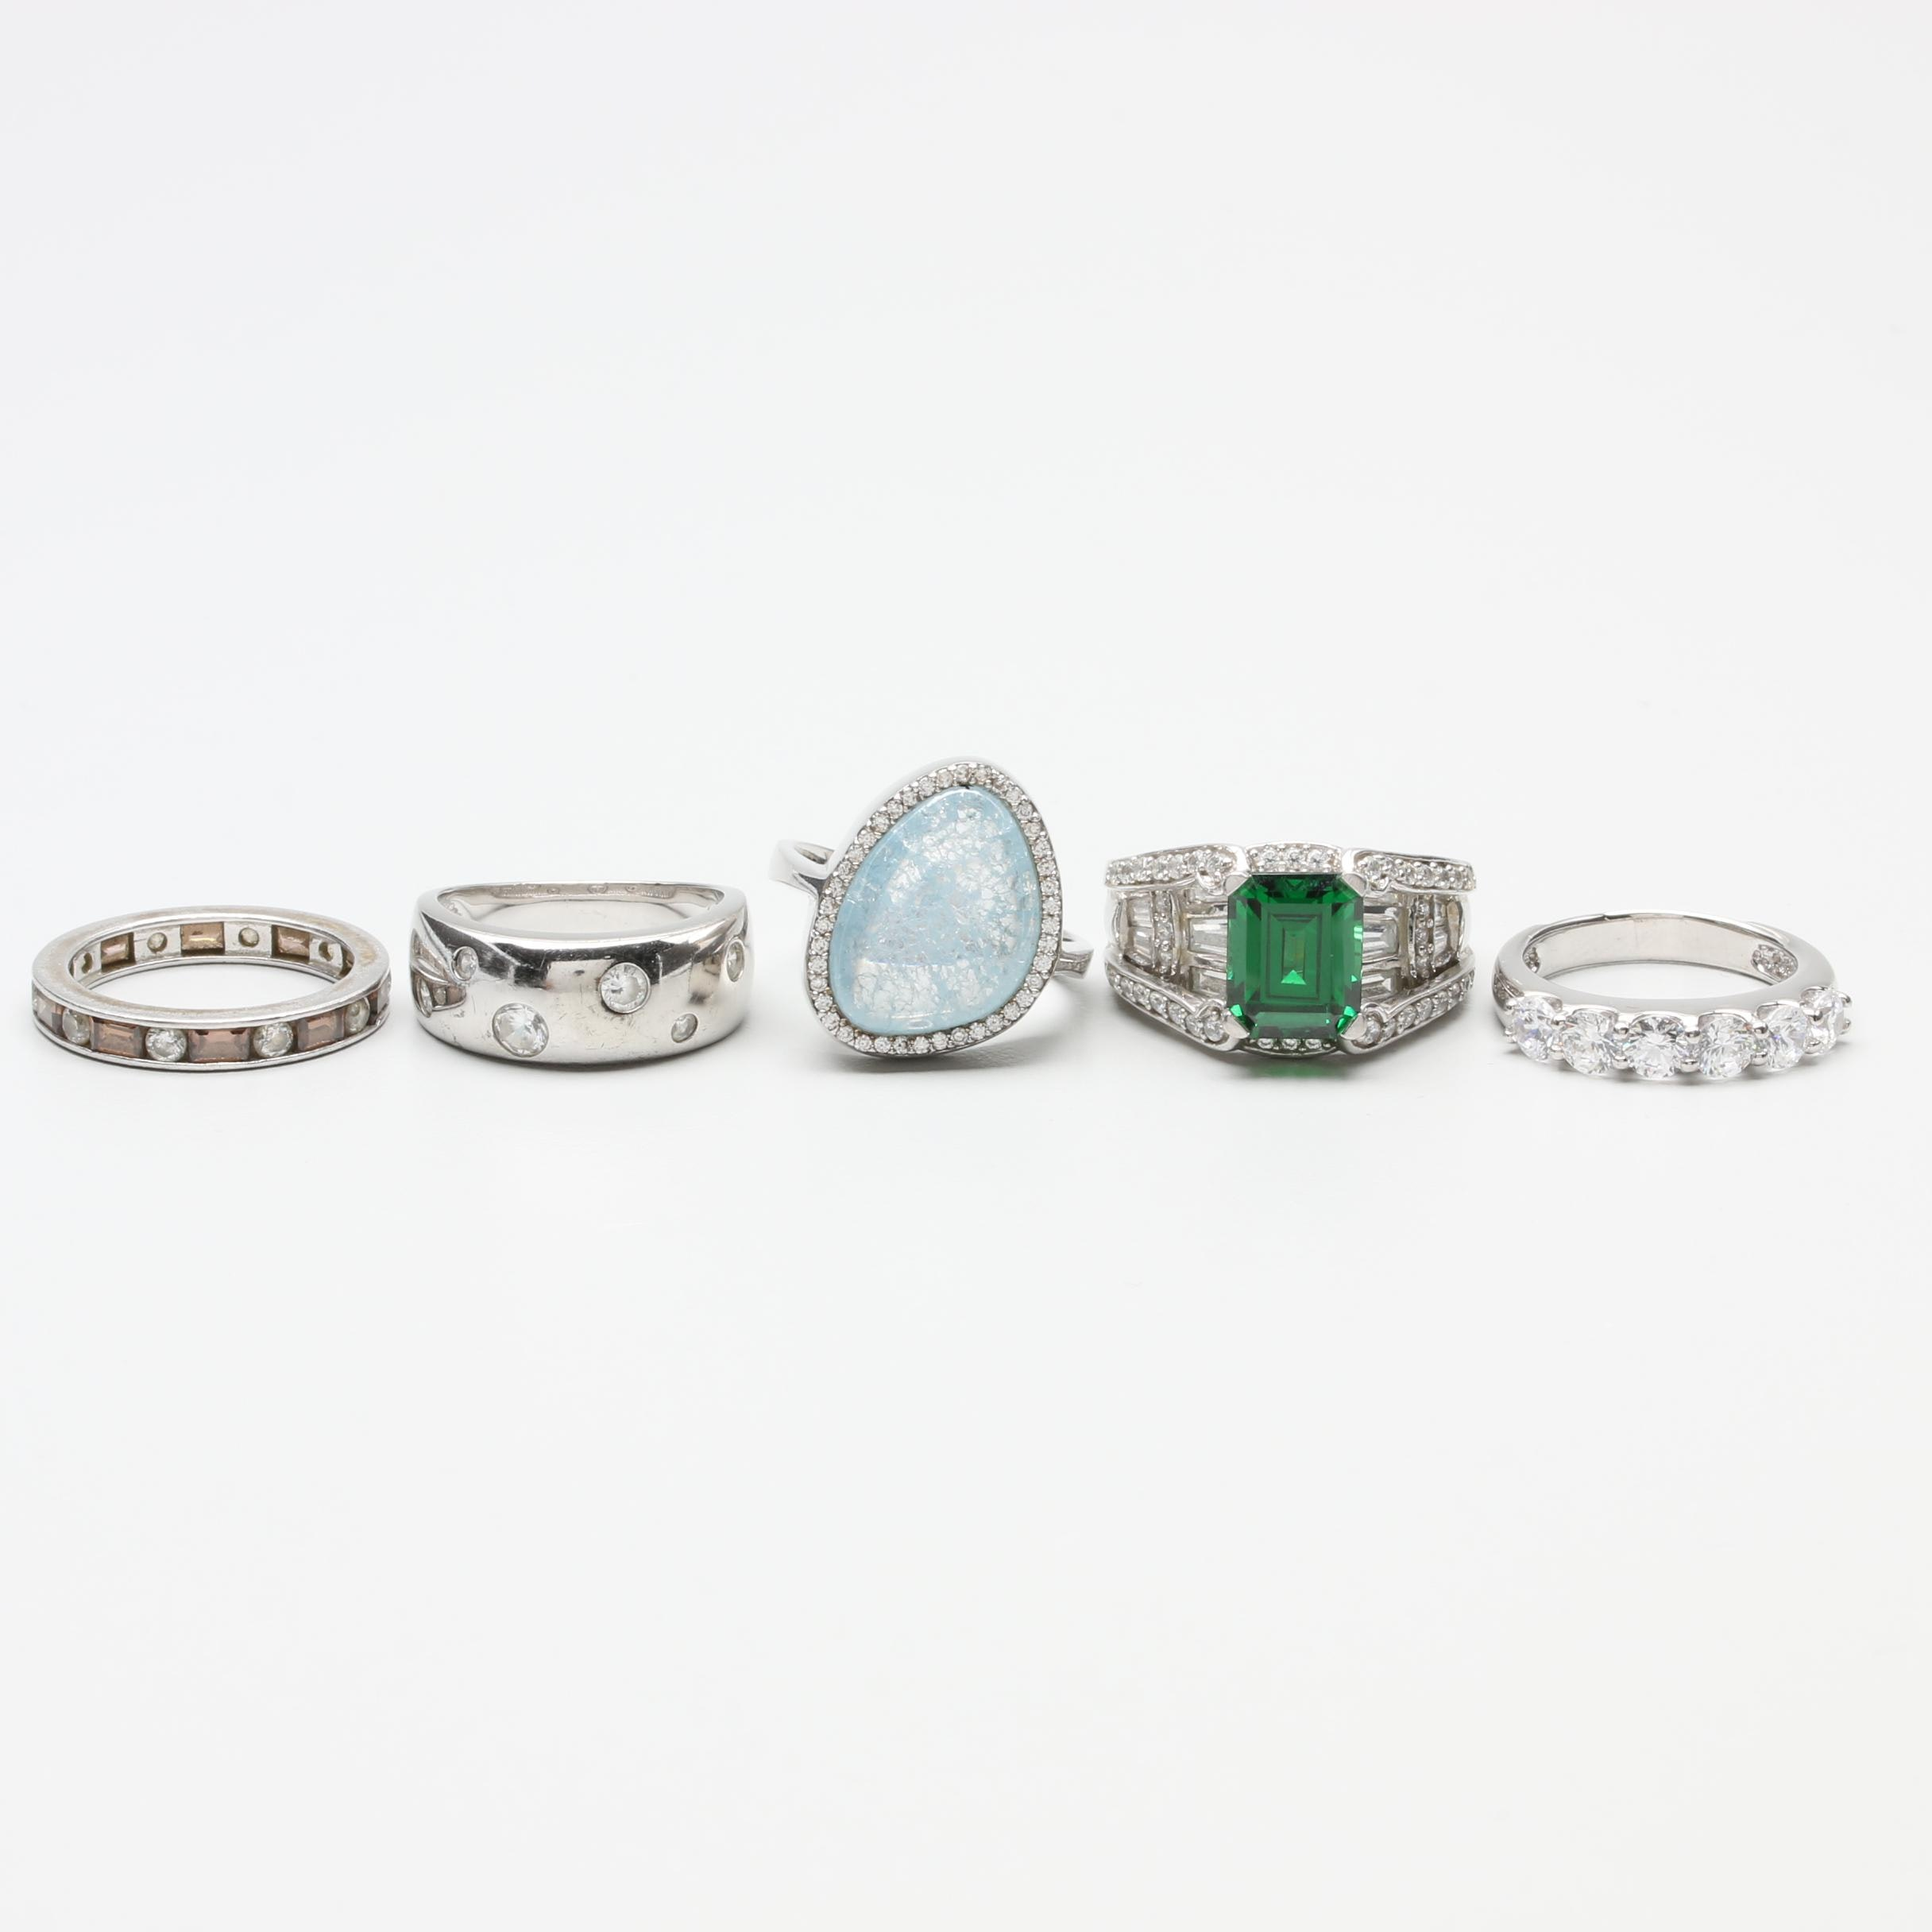 Sterling Silver Cubic Zirconia and Glass Ring Selection